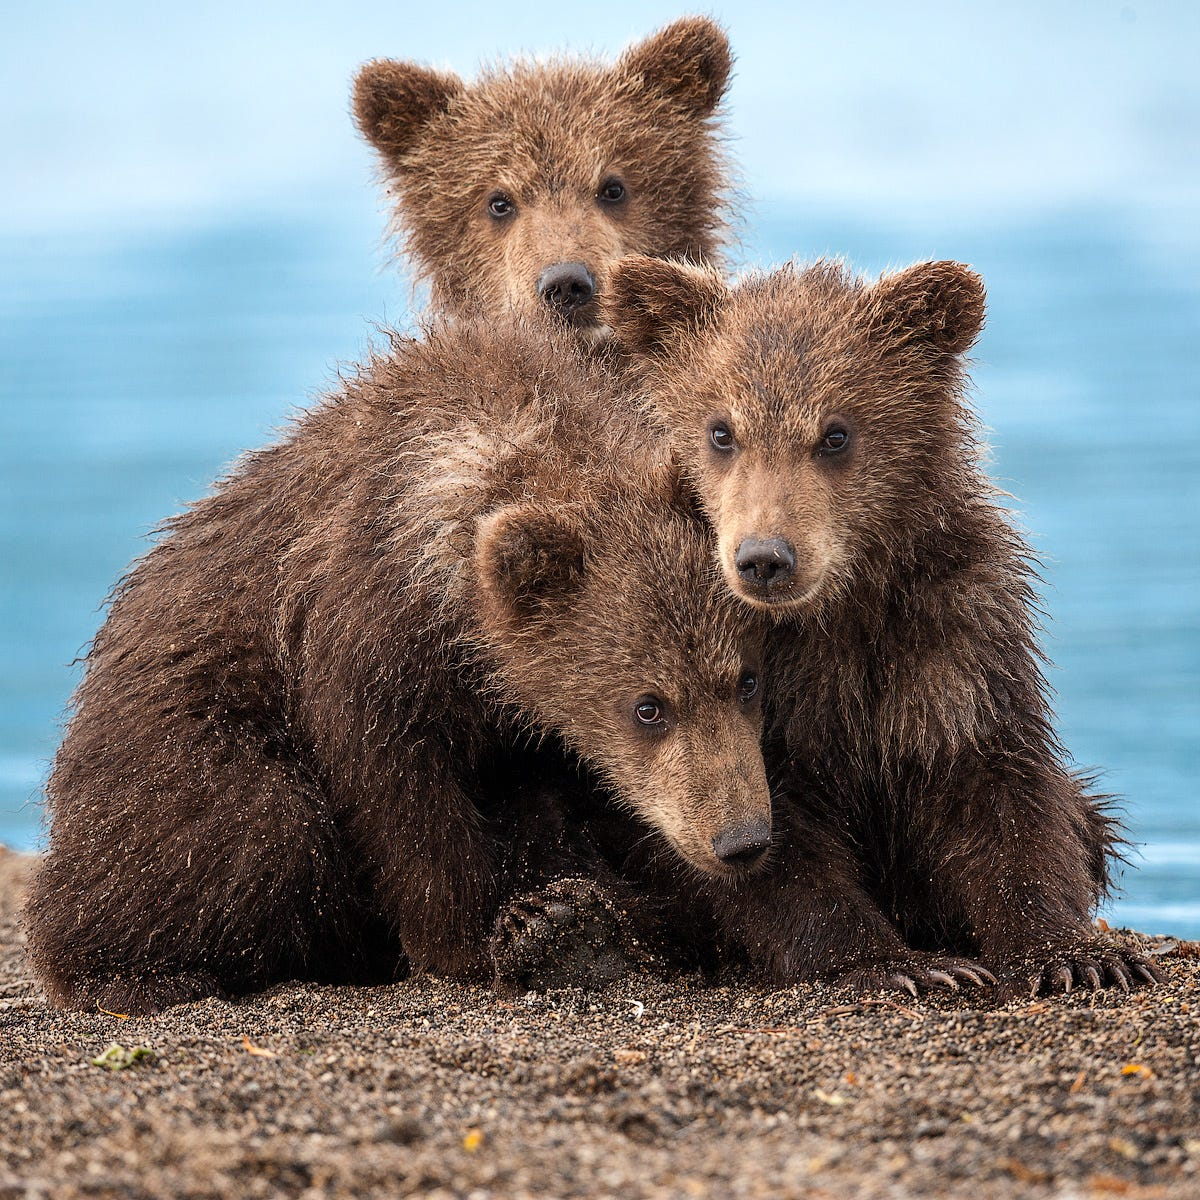 Ungentle charm of Kamchatka bears in photos by Sergey Ivanov - 28